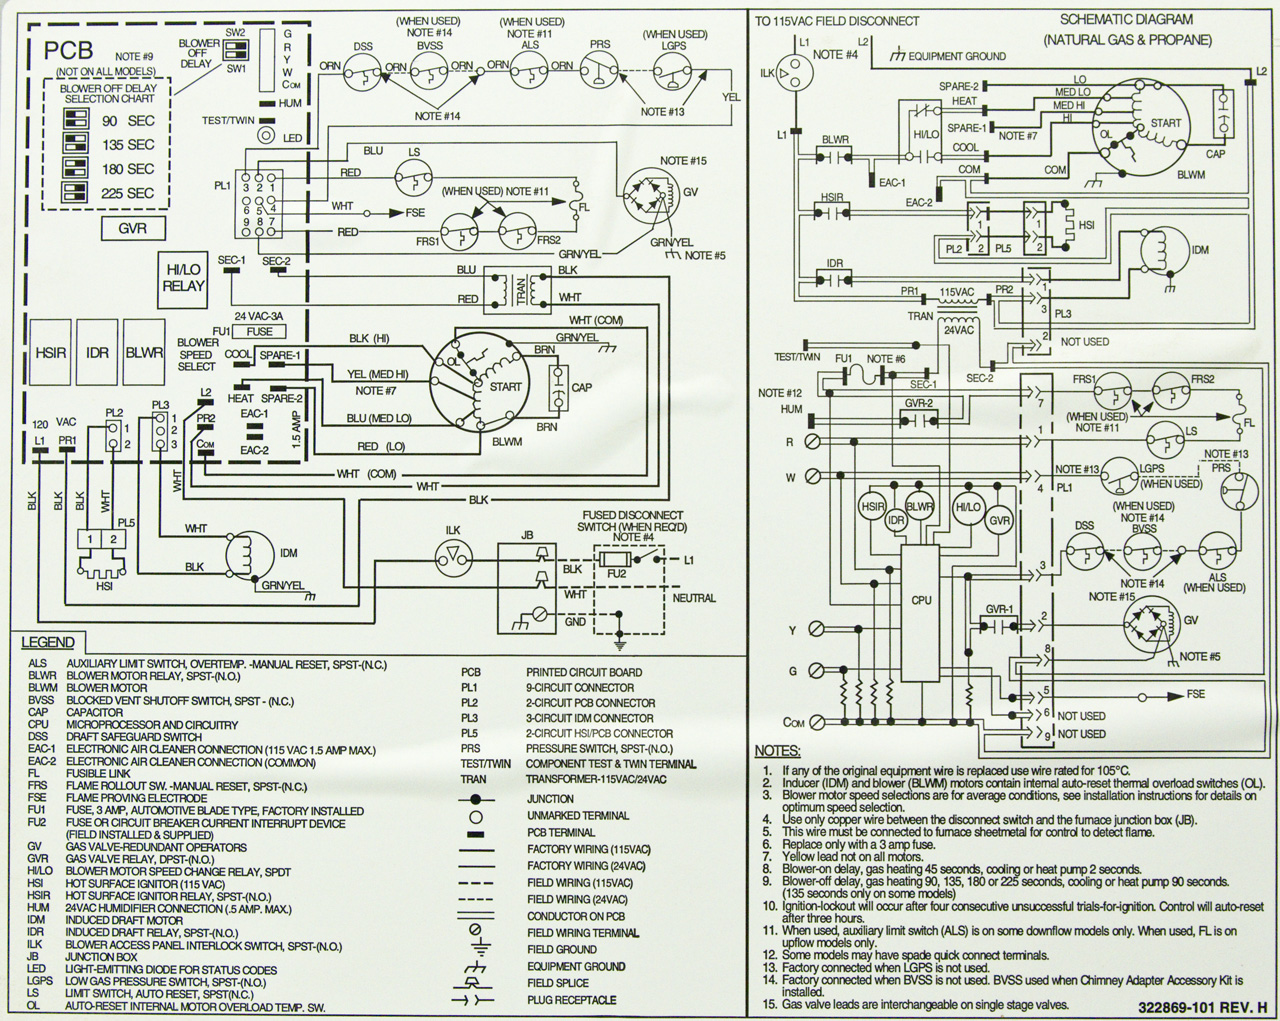 Schematic58PAV090 14 katolight generator wiring diagram yamaha generator wiring diagram katolight generator wiring diagram at creativeand.co